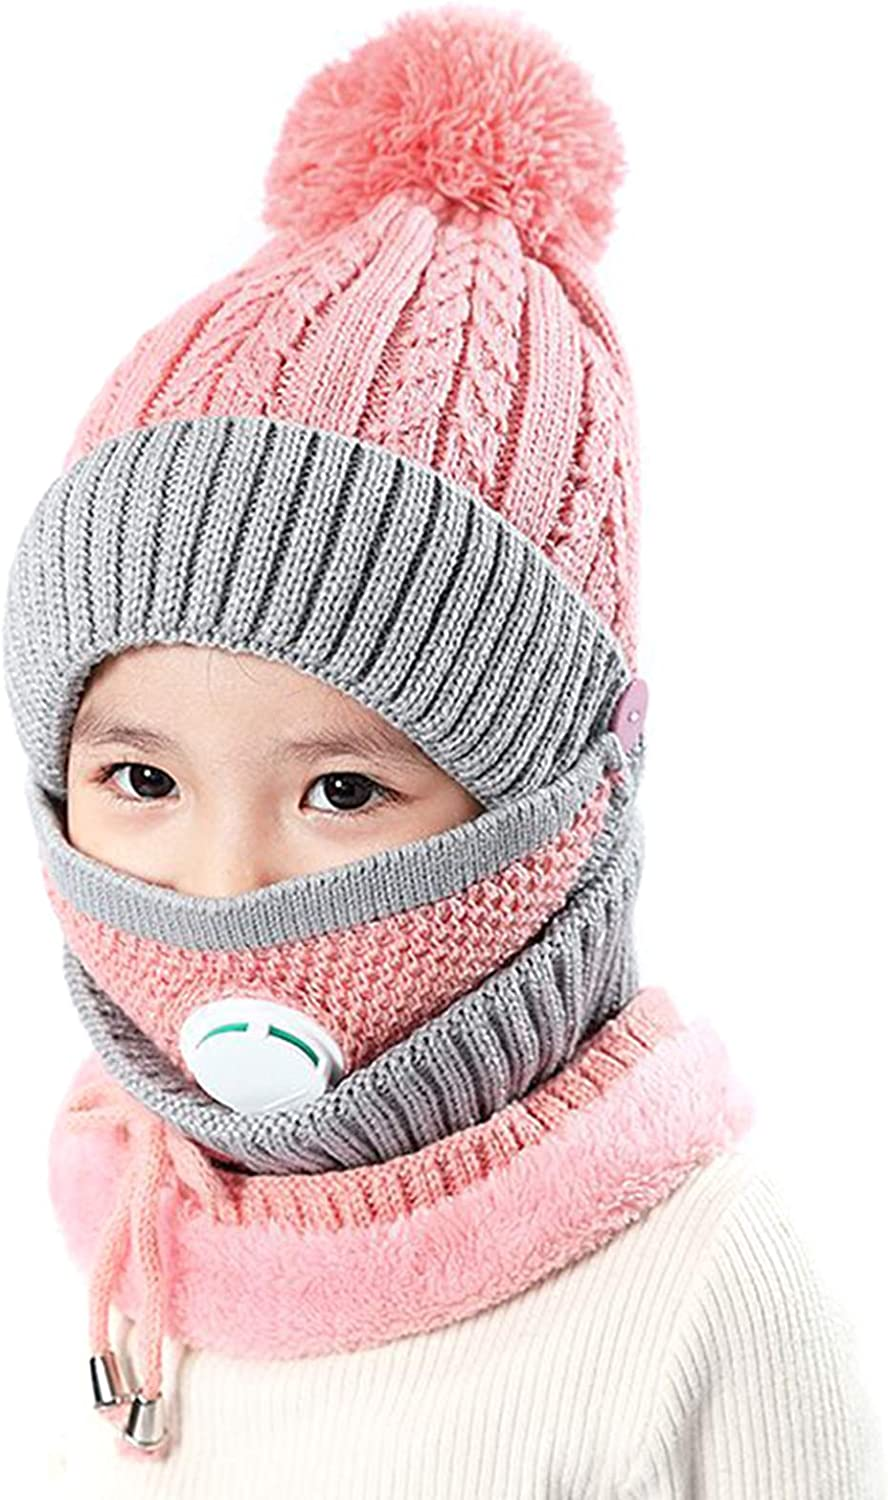 QKFON 3 in 1 Kids Knitted Scarf Hat Face Cover Set with Breathing Valve Adjustable Scarf Warm Soft Hat for Winter Children Outdoor One Size